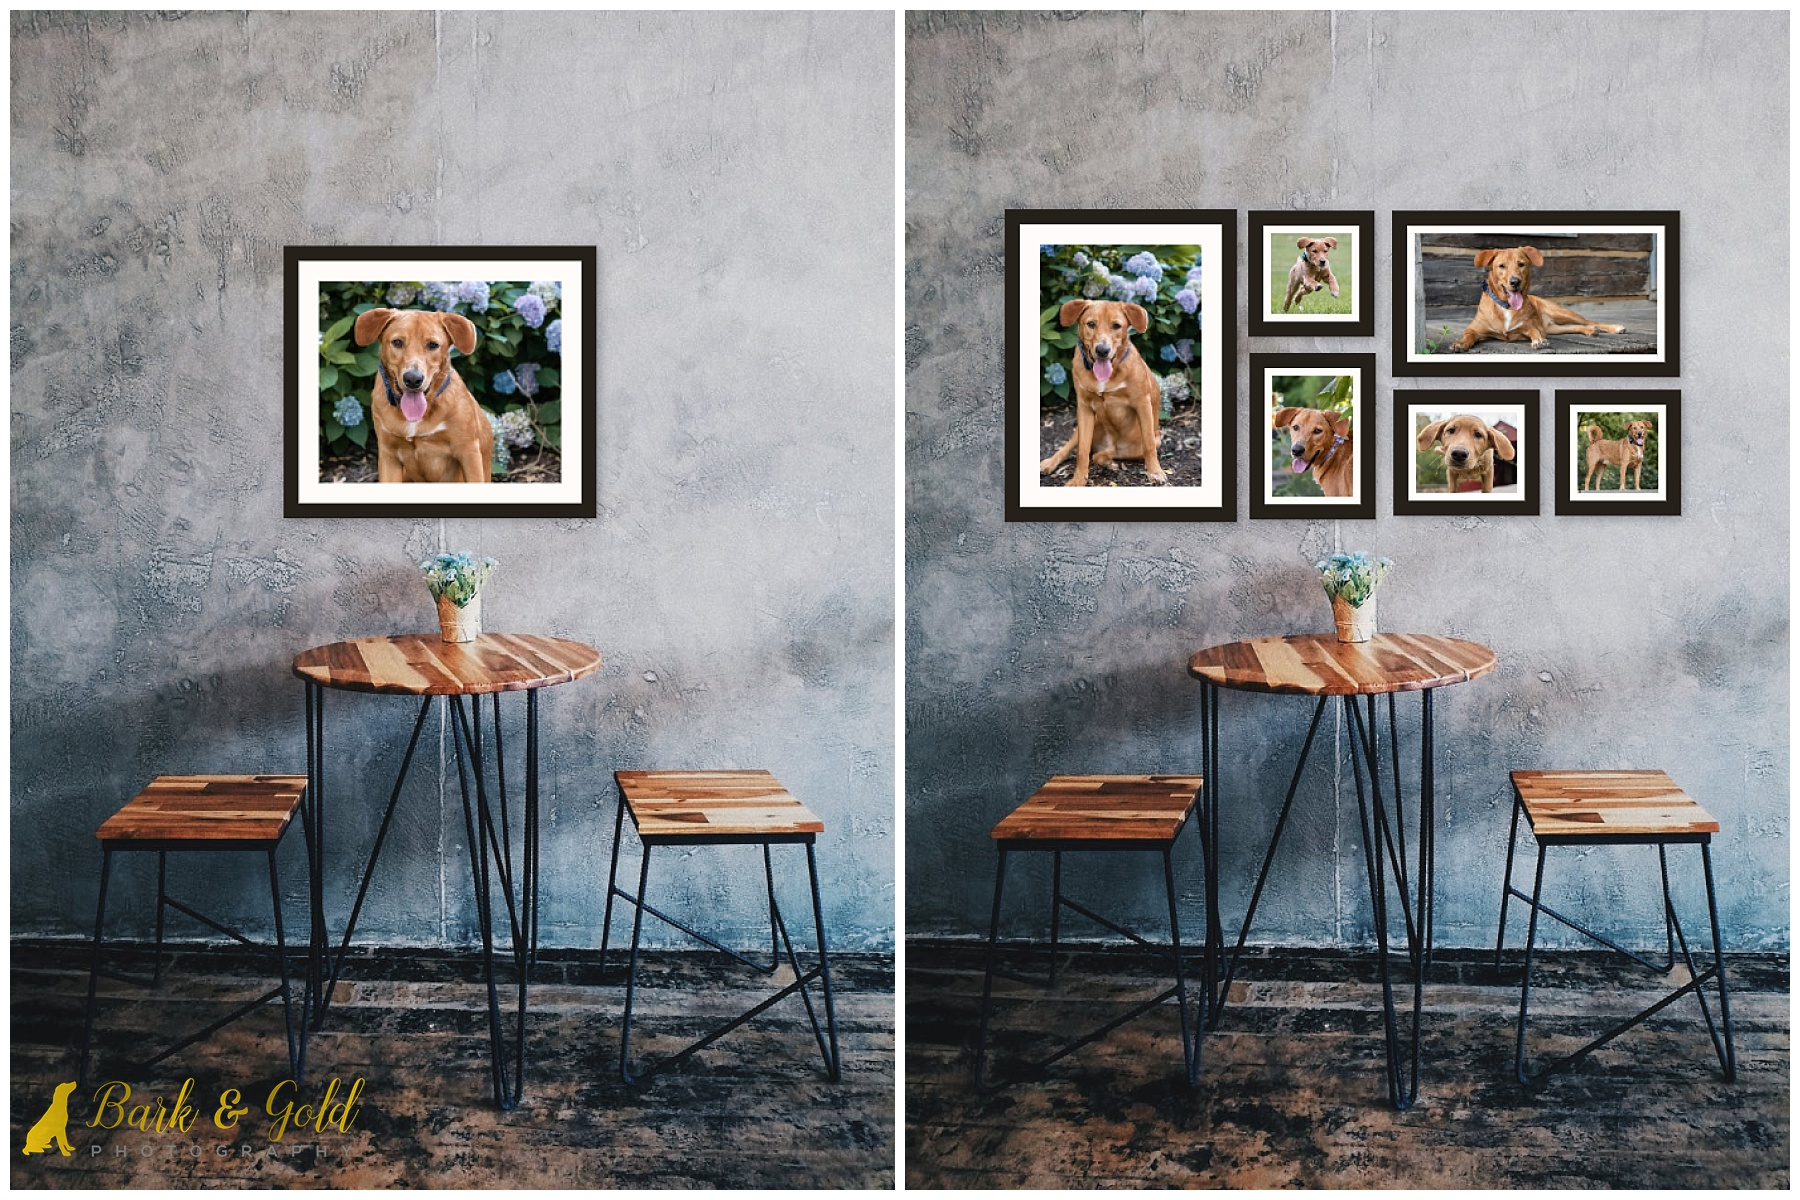 signature wall art as a single piece versus a wall art grouping